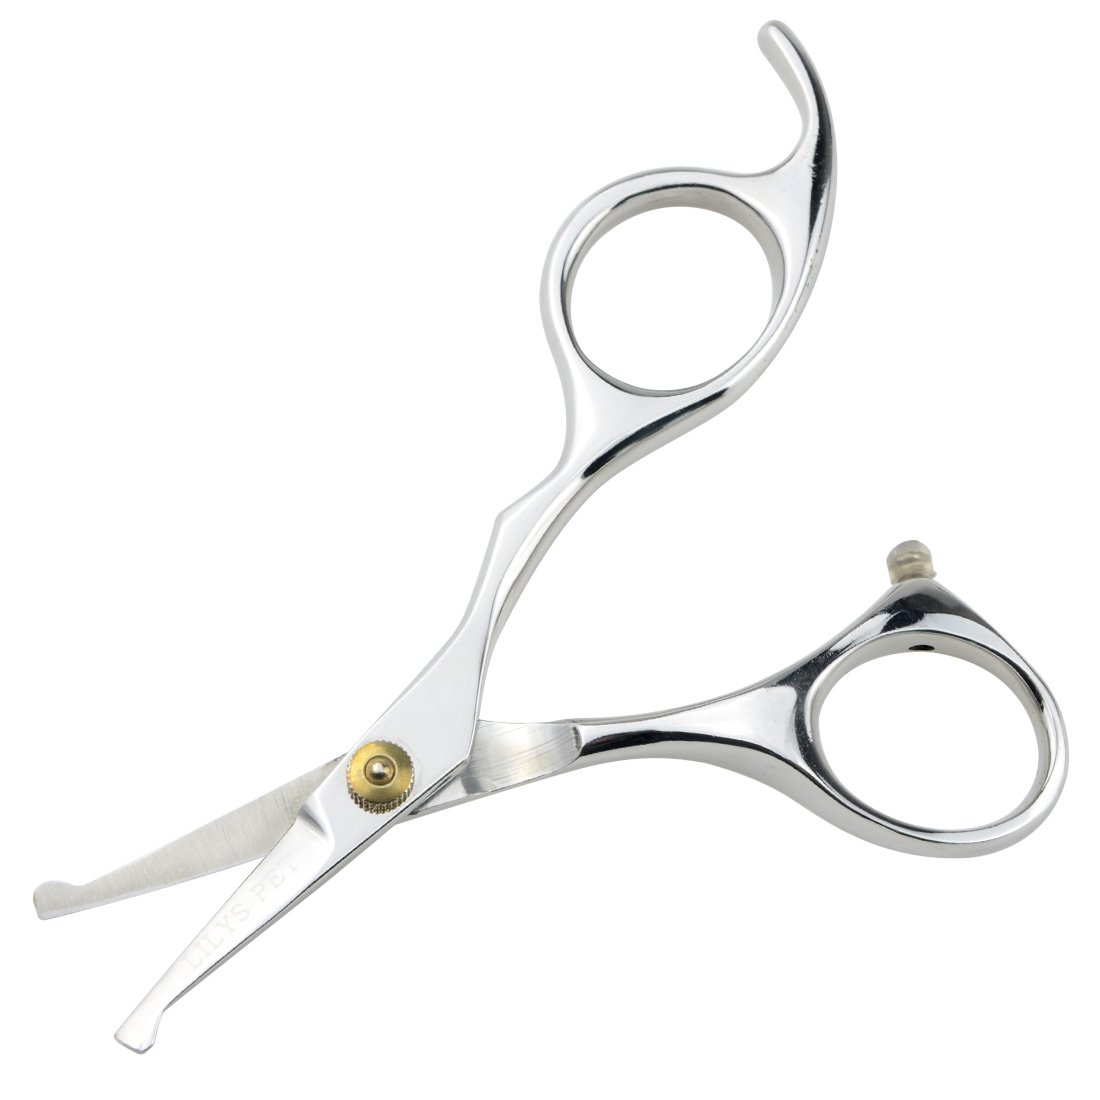 LILYS PET 5.0 Right-Handed Round-Tip Pet Grooming Scissors Stainless Steel Small Ball Tip for Nose Hair,Ear Hair,Face Hair,Paw Hair for Dogs and Cats/…